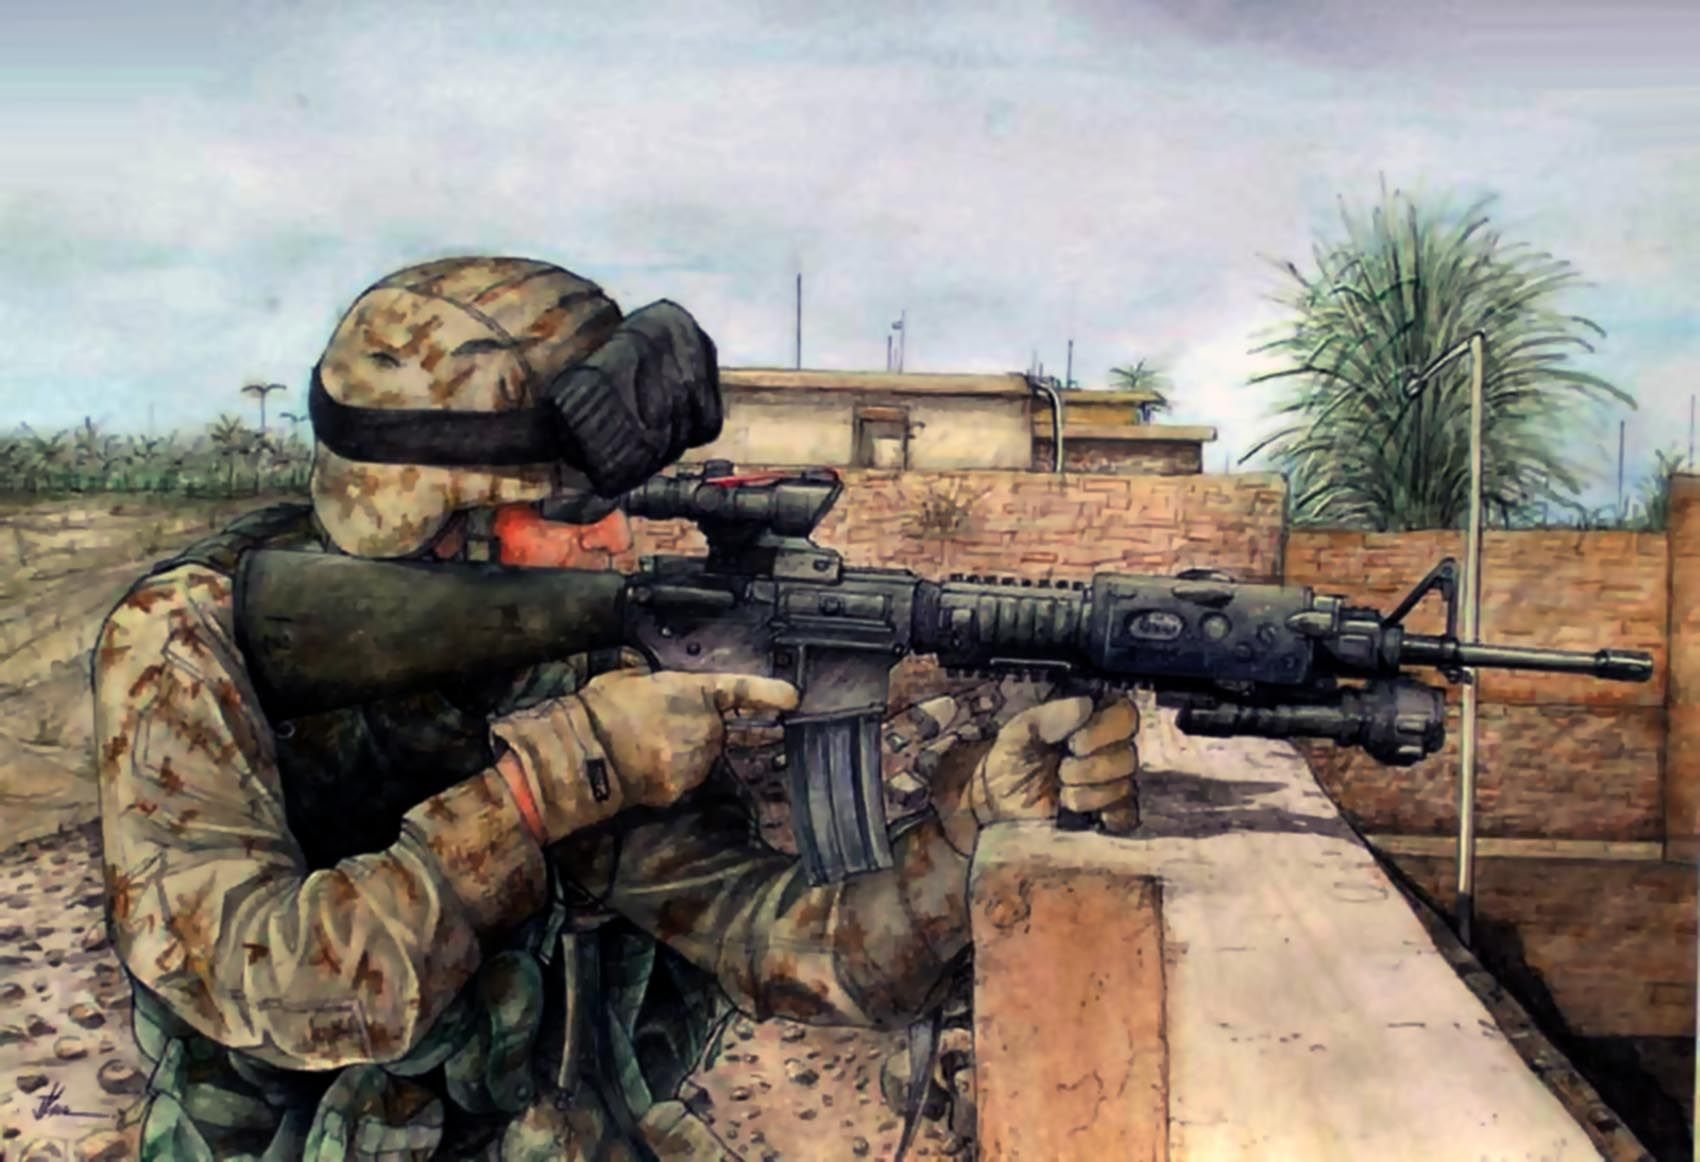 Iraq Combat Is Over And War Is History >> Us Marine In Iraq 21st Century War Art Military Art Afghanistan